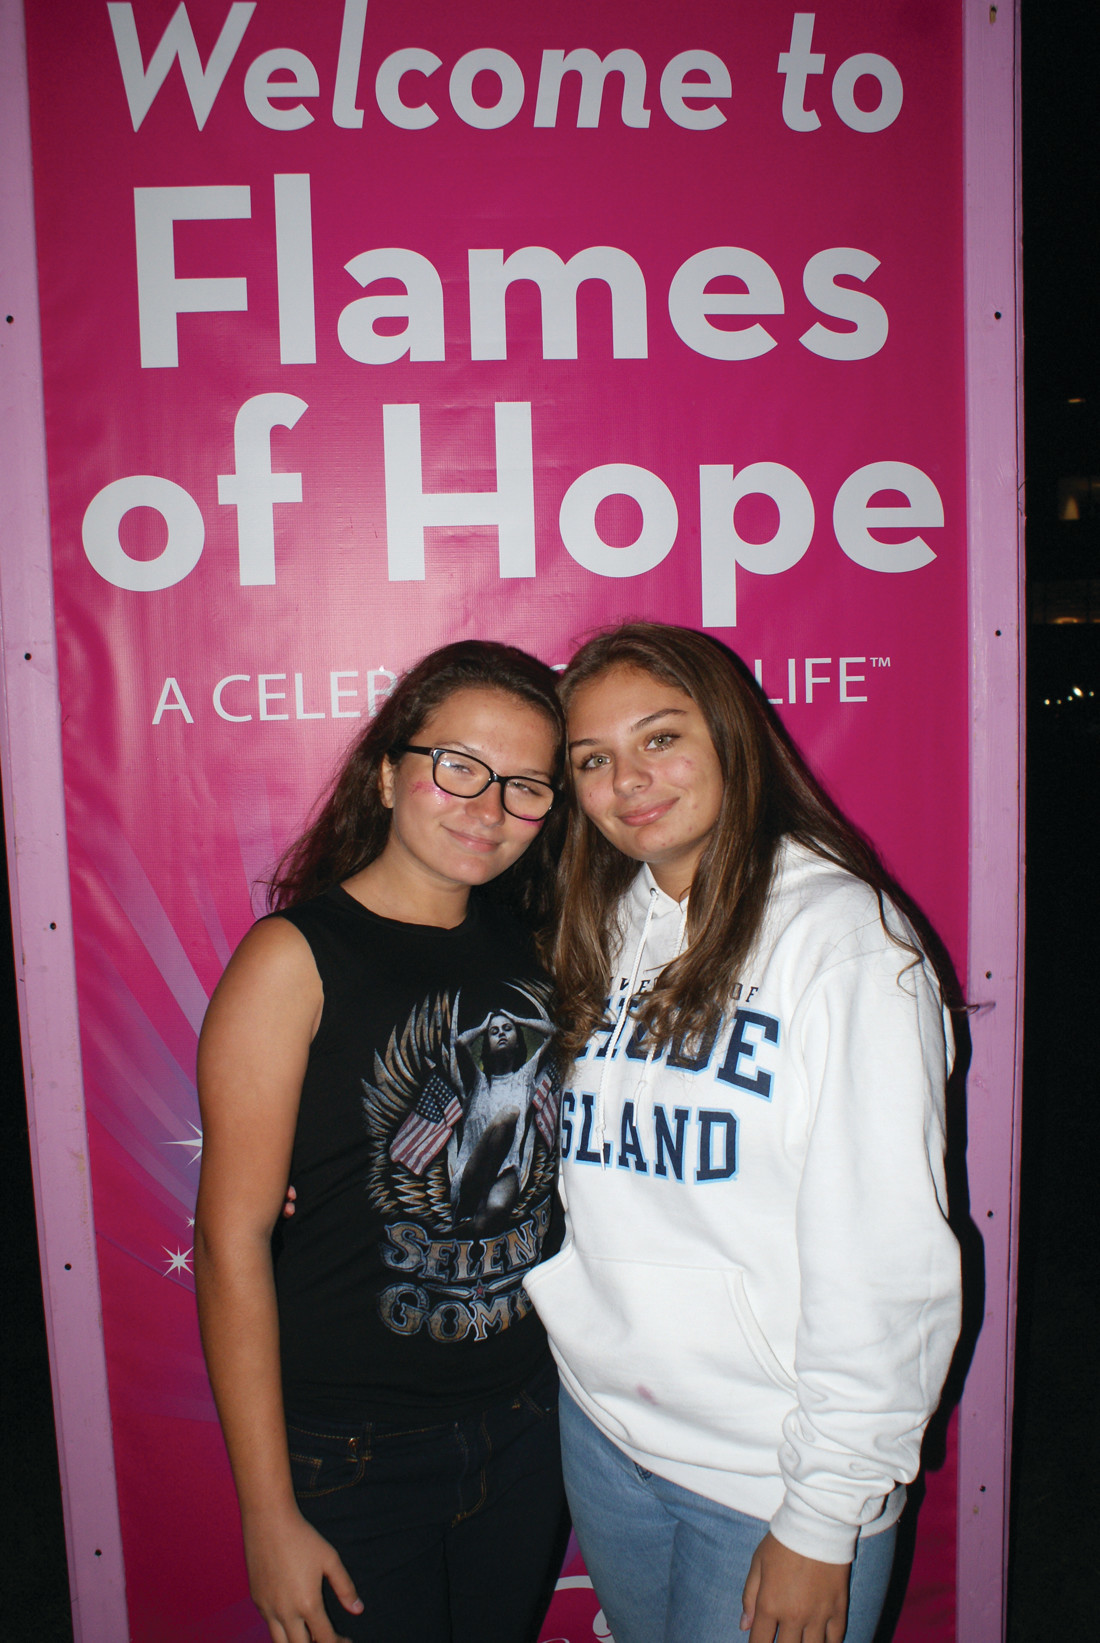 WELCOME ALL: Pictured in front of just one of the many banners welcoming the public to the Gloria Gemma Breast Cancer Resource Foundation's Flames of Hope are twin sisters Madison and Katrini Abatiello, who attend Cranston High School East.